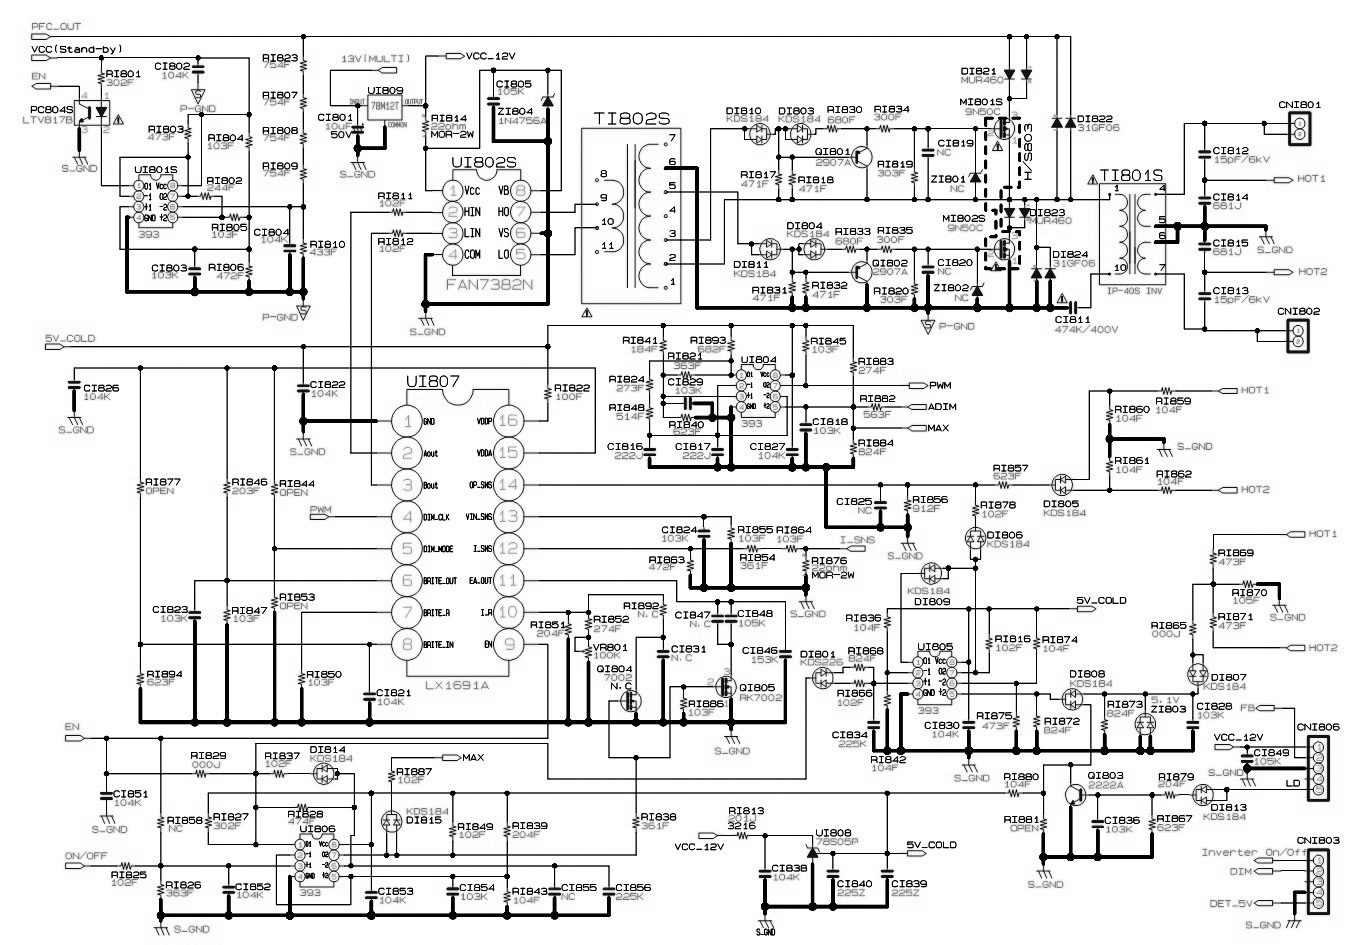 BN44 00165A SAMSUNG LED LCD TV SMPS CIRCUIT DIAGRAM